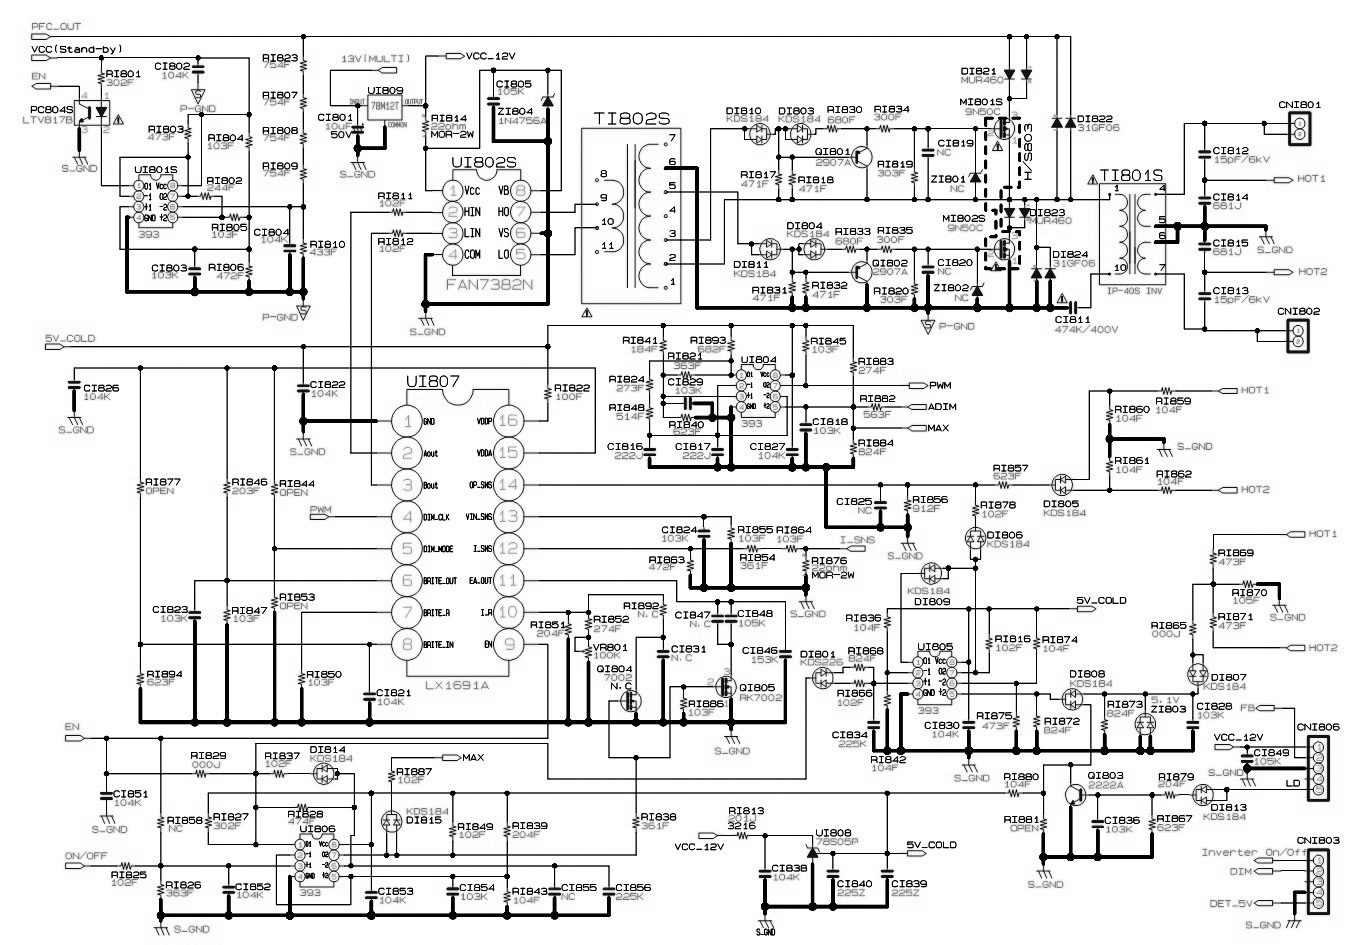 BN44 00165A SAMSUNG LED LCD TV SMPS CIRCUIT DIAGRAM